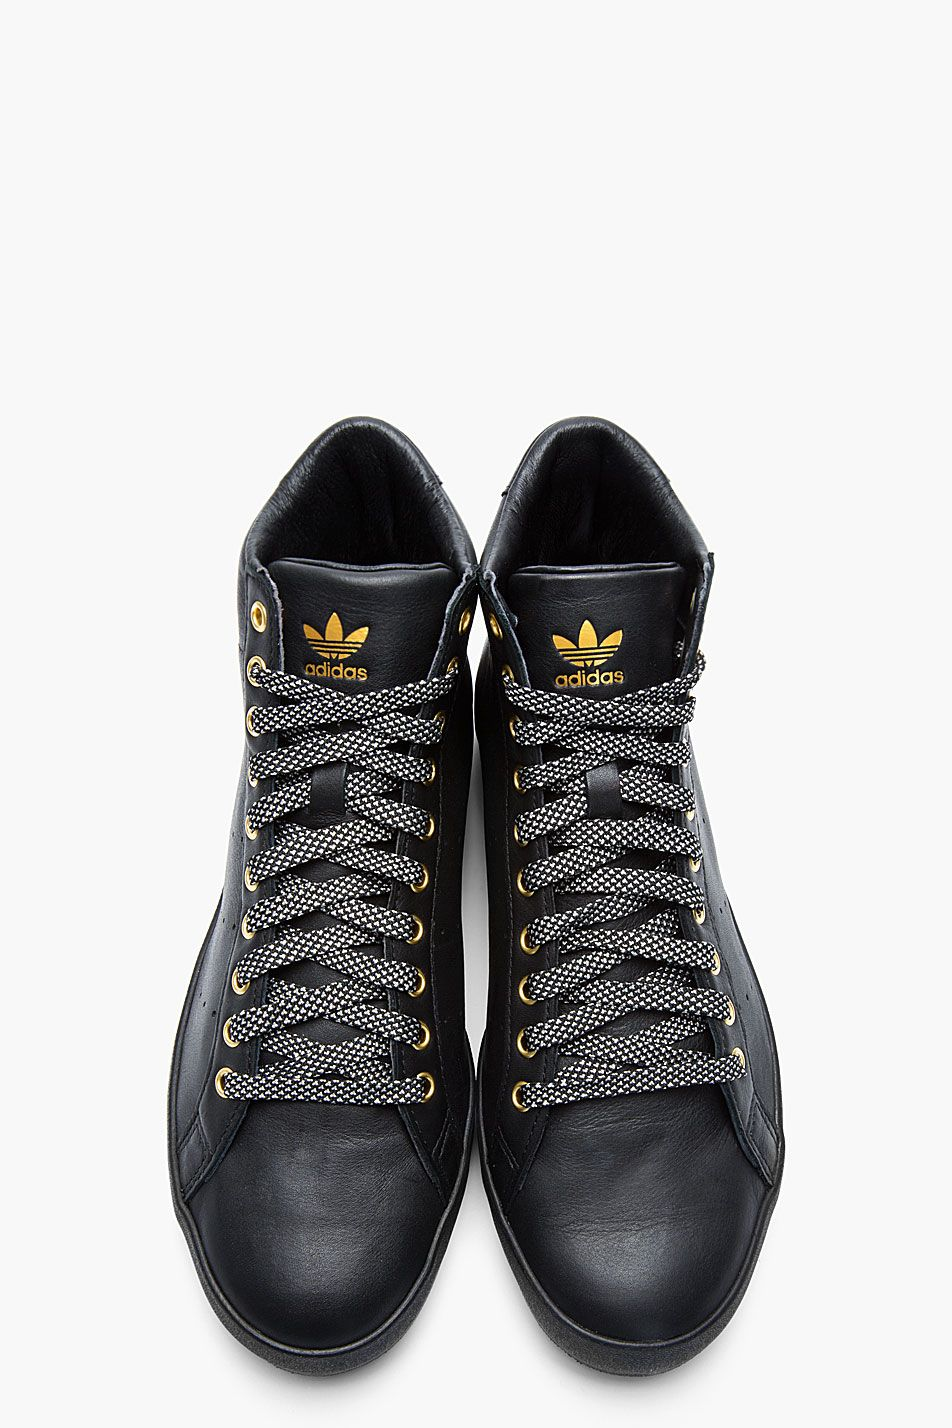 Adidas Originals By O C Black And Gold Leather Rod Laver